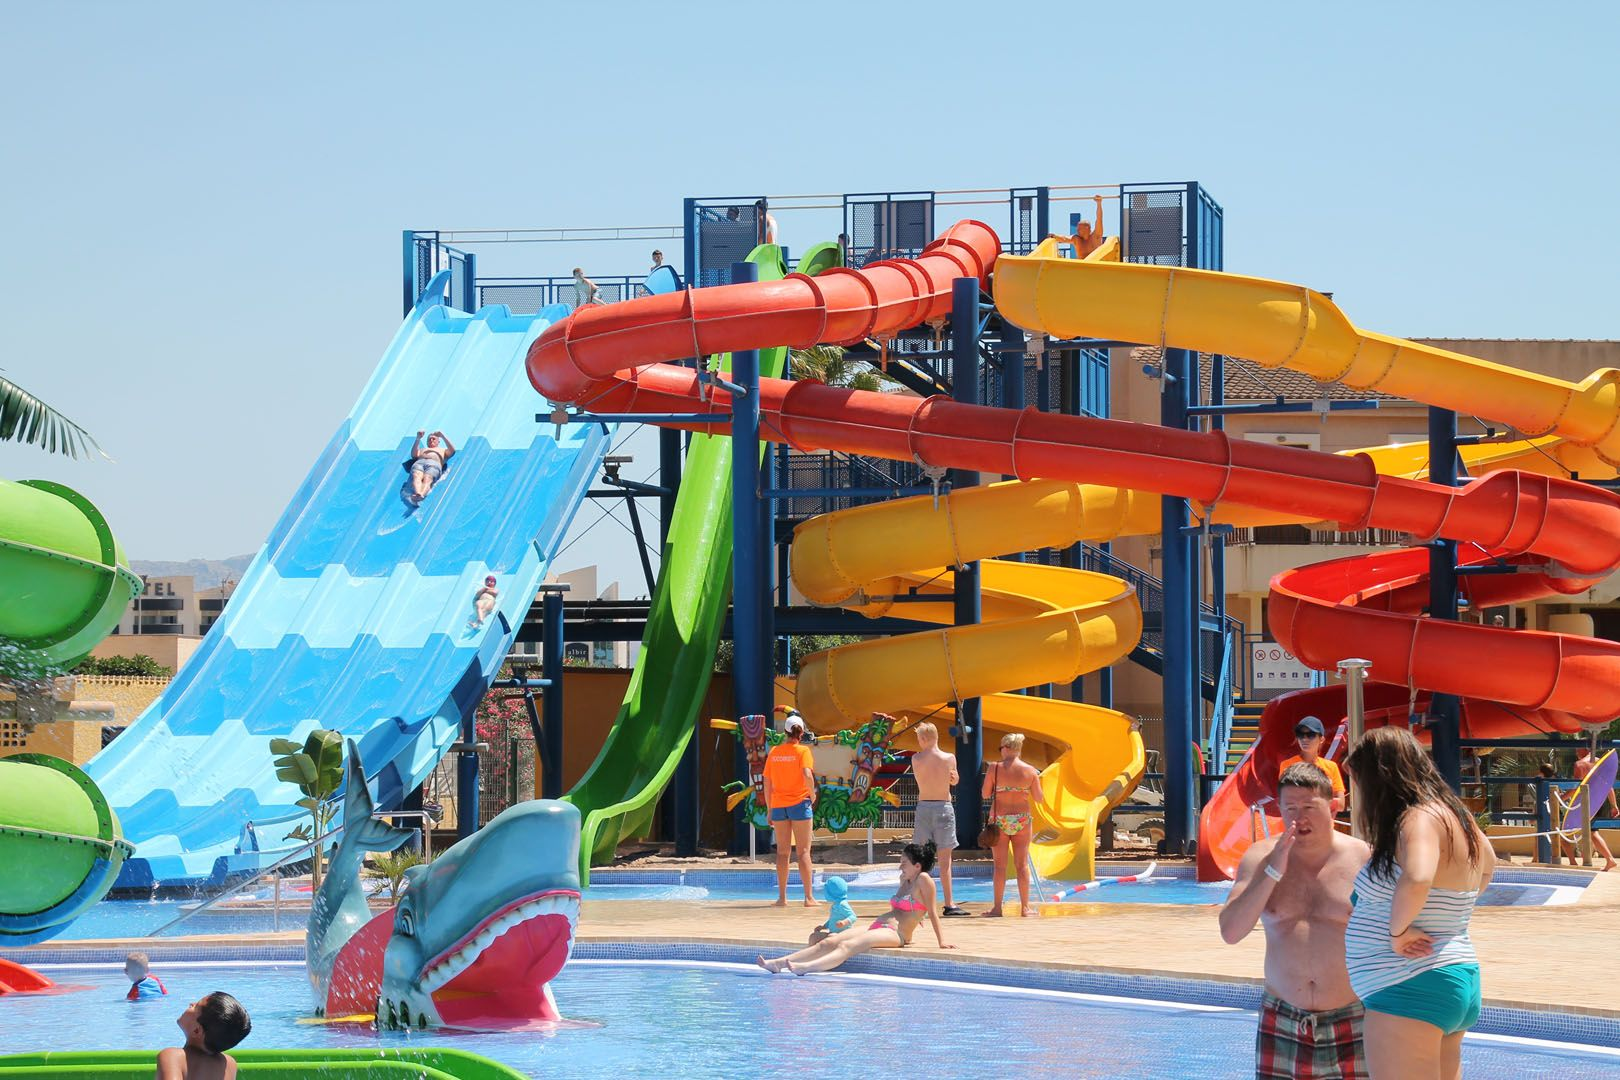 Swimmingpools Outdoorpools Children Spools Waterslides Holidays Summer Toboganes De Agua Toboganes Parque Acuatico